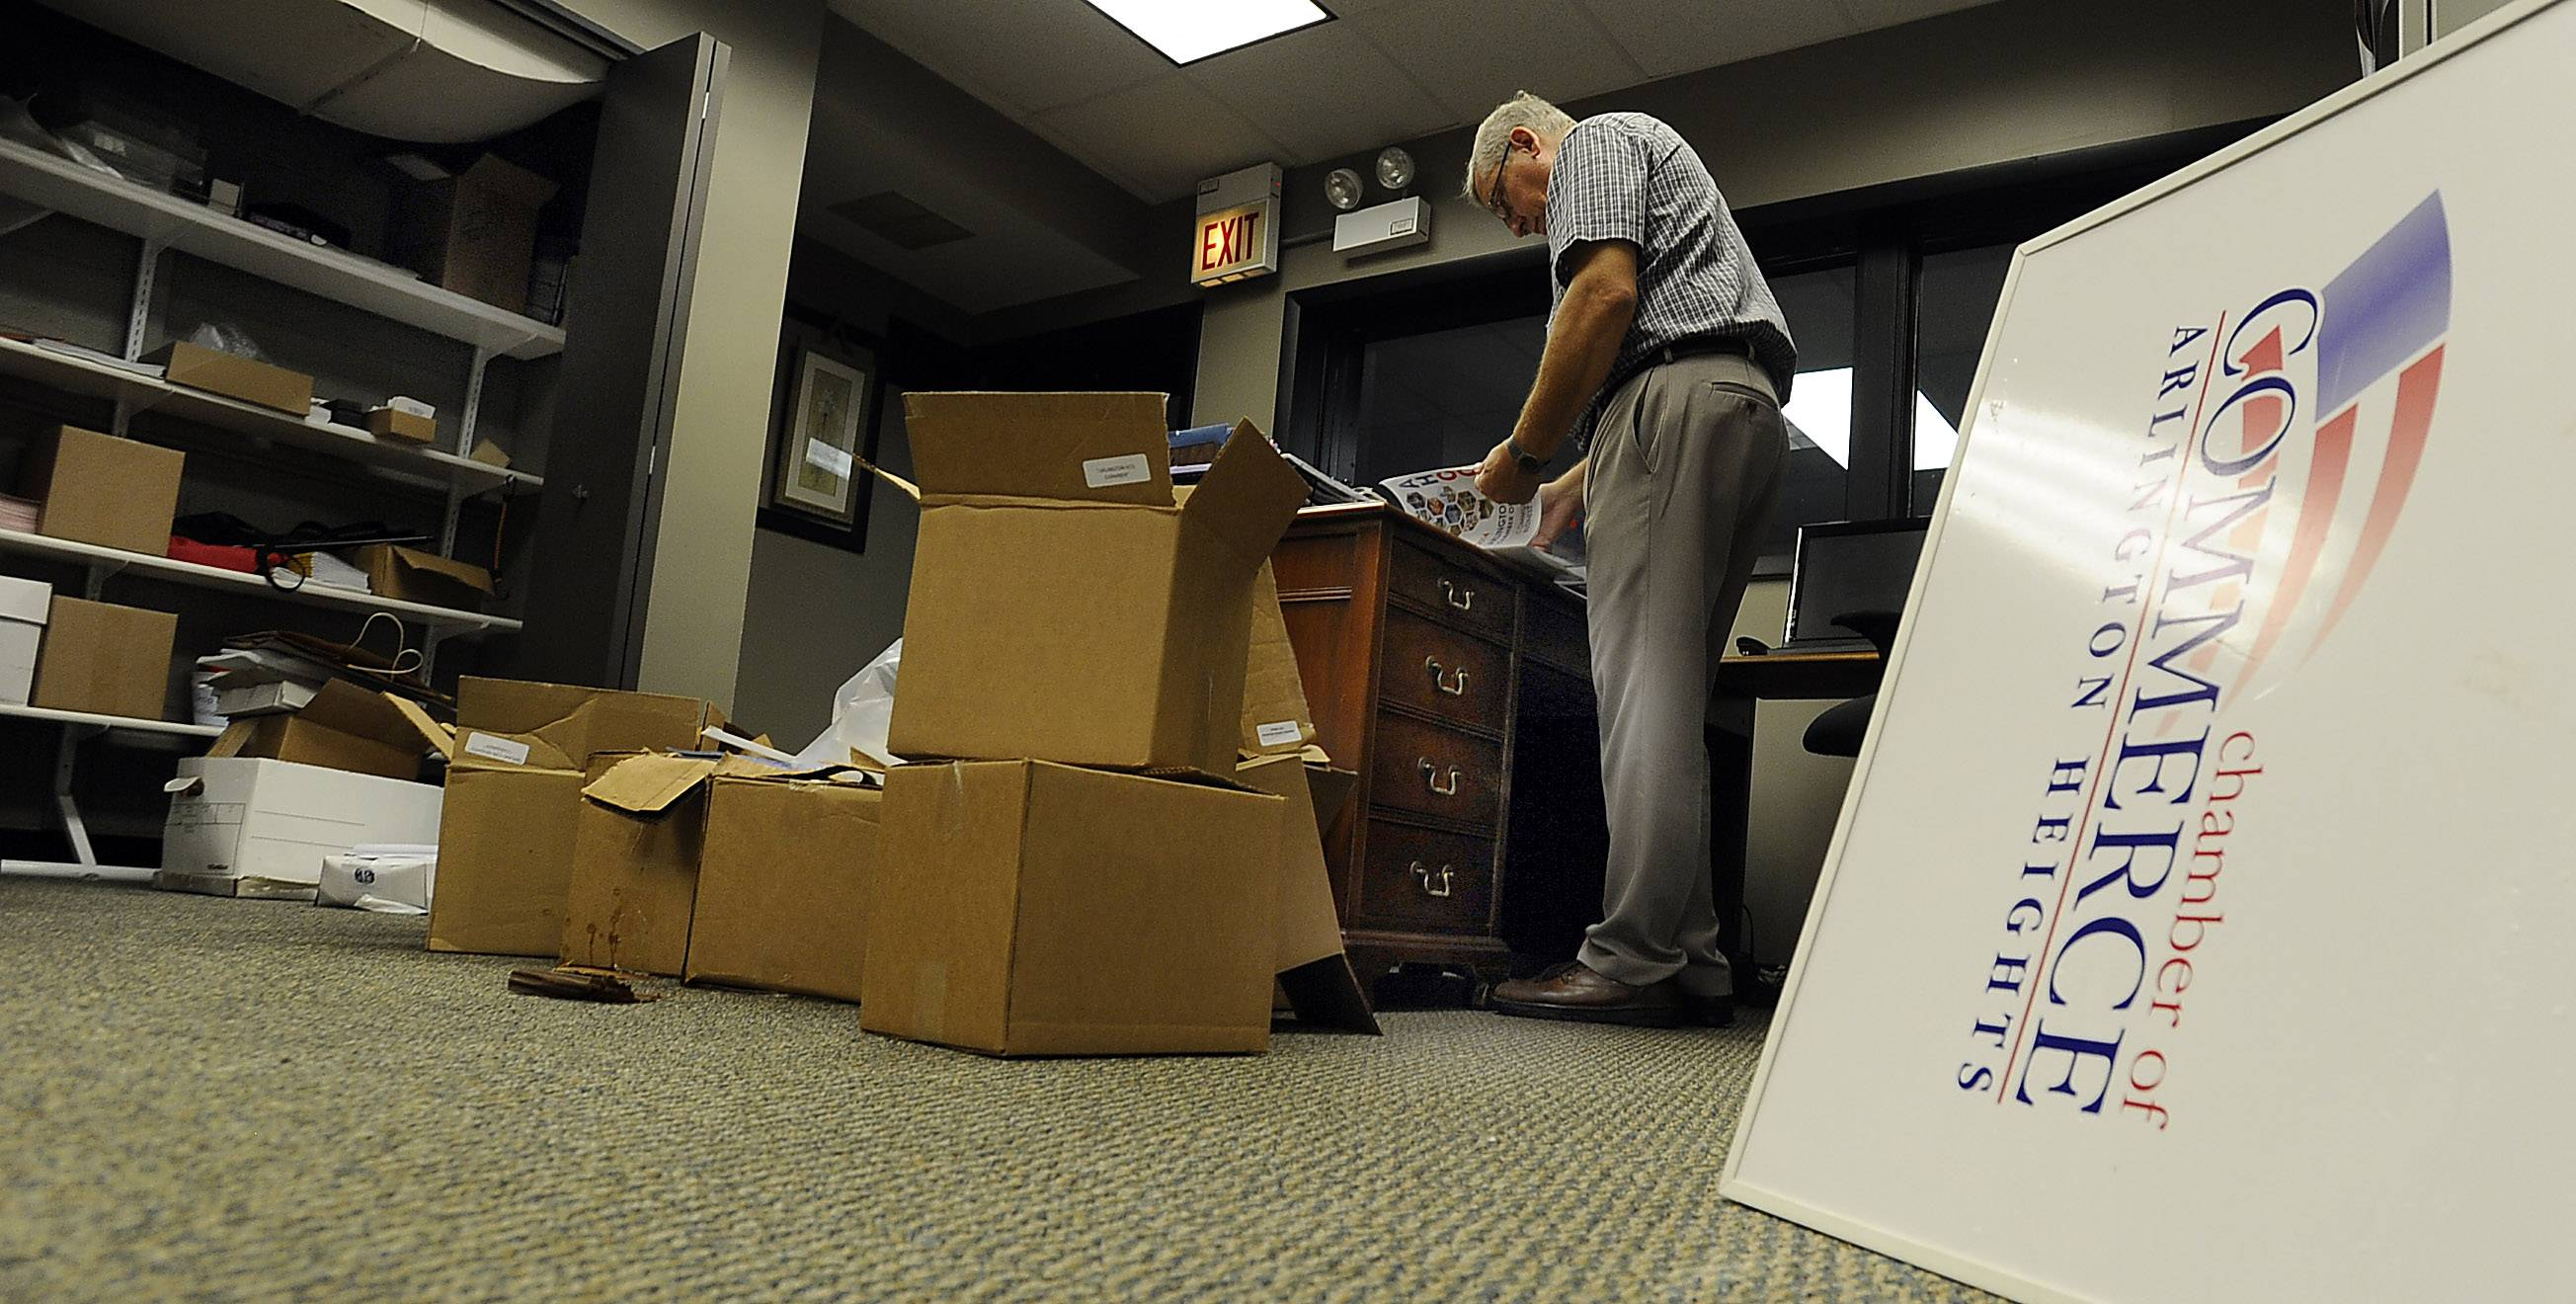 Employees of the Arlington Heights Chamber of Commerce go about their work Monday, around the water-soaked boxes of materials. The office got about 4 inches of water over the weekend -- the second time their office has been flooded.